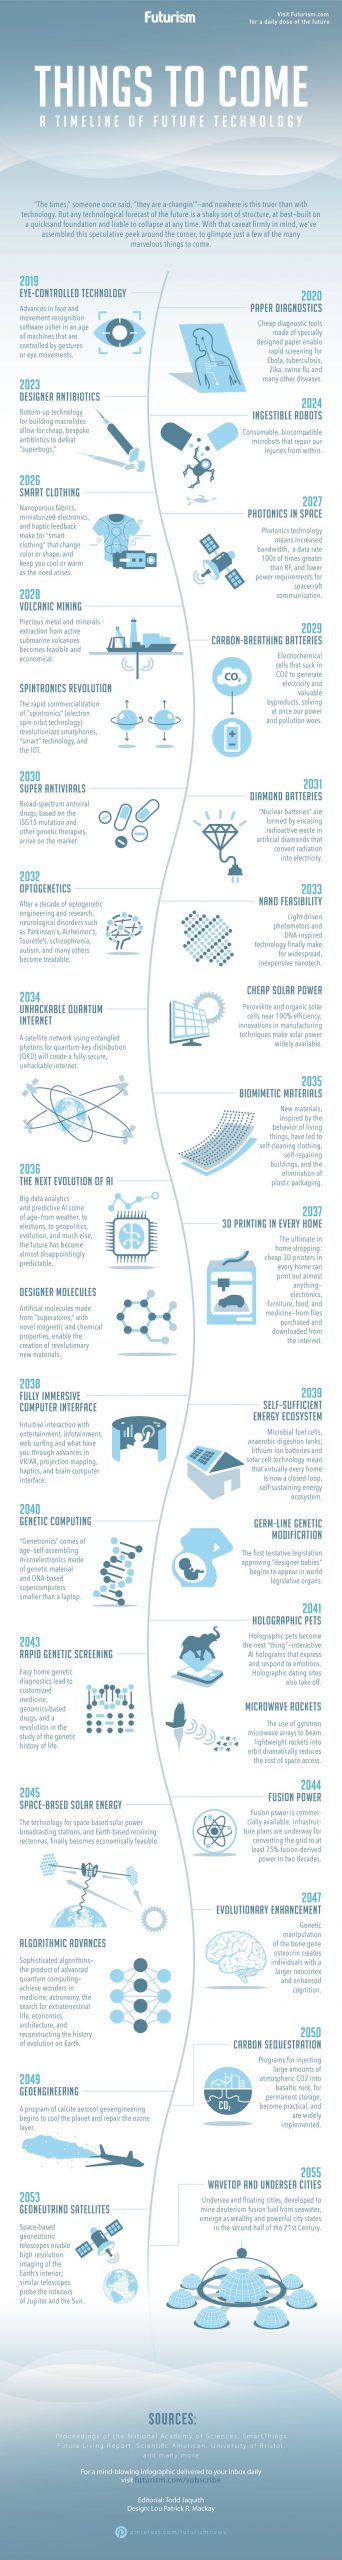 A Timeline of Future Technologies 2019-2055